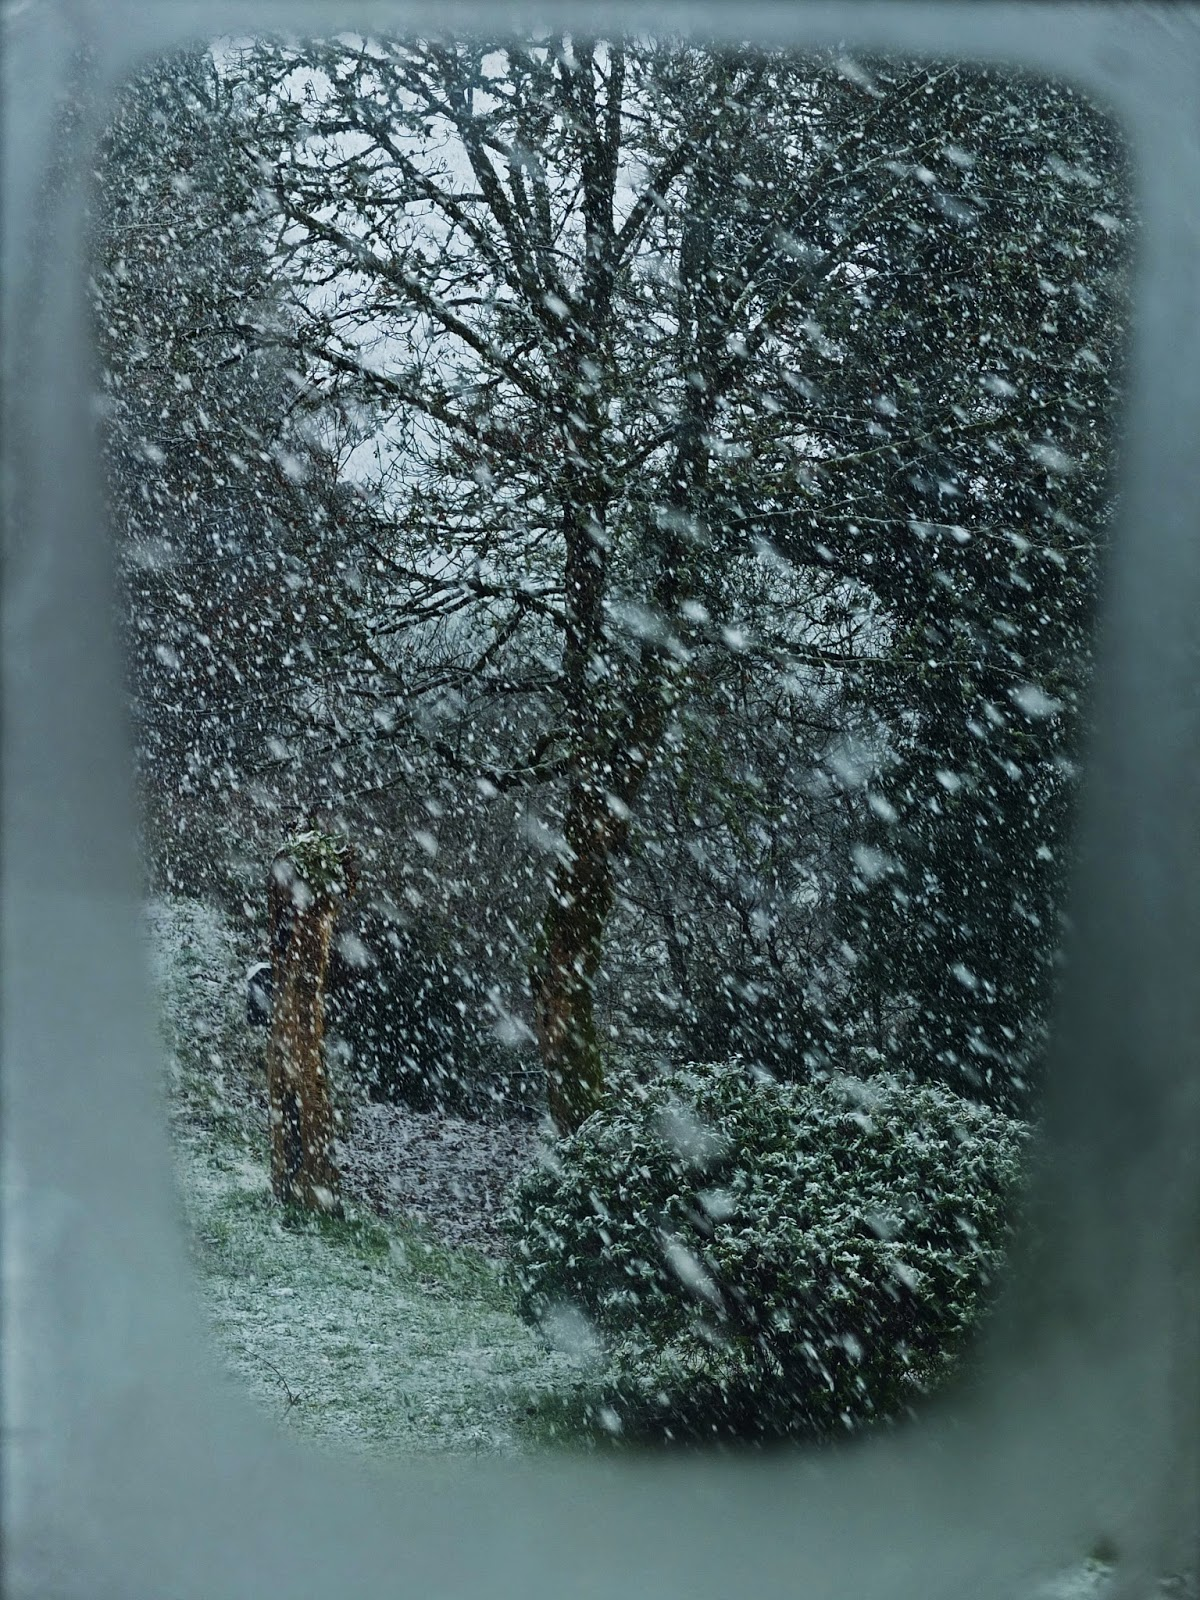 Photo taken through a window overlooking a maple tree in a blizzard.